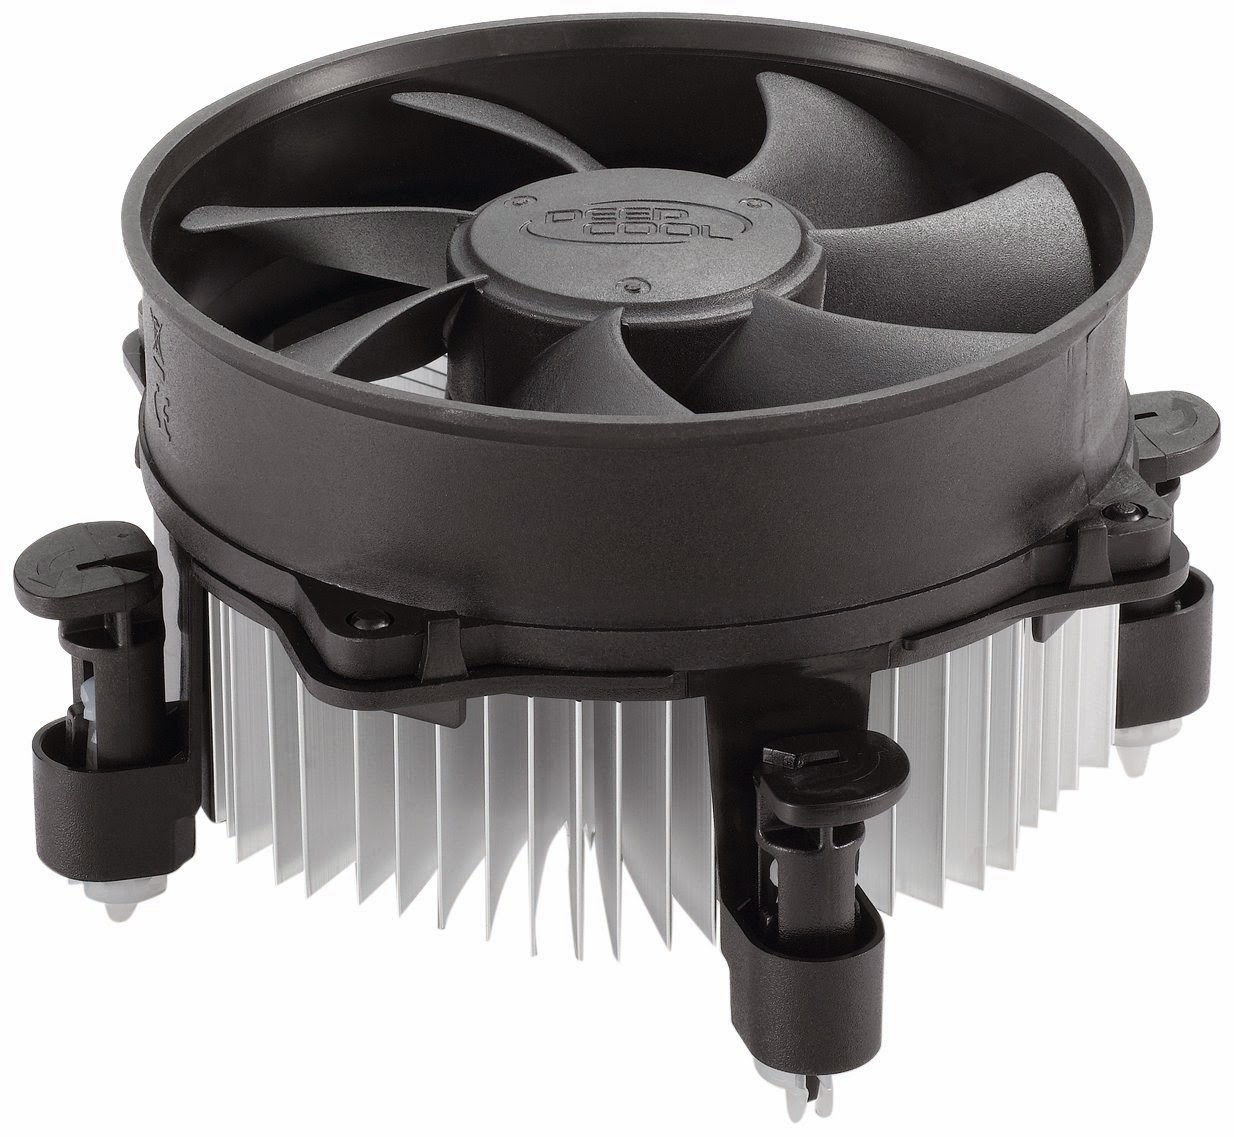 Buy Deepcool Alta 9 CPU Cooler for LGA 1156/1155 and Socket 775 (PC) Rs. 356 only at Amazon.